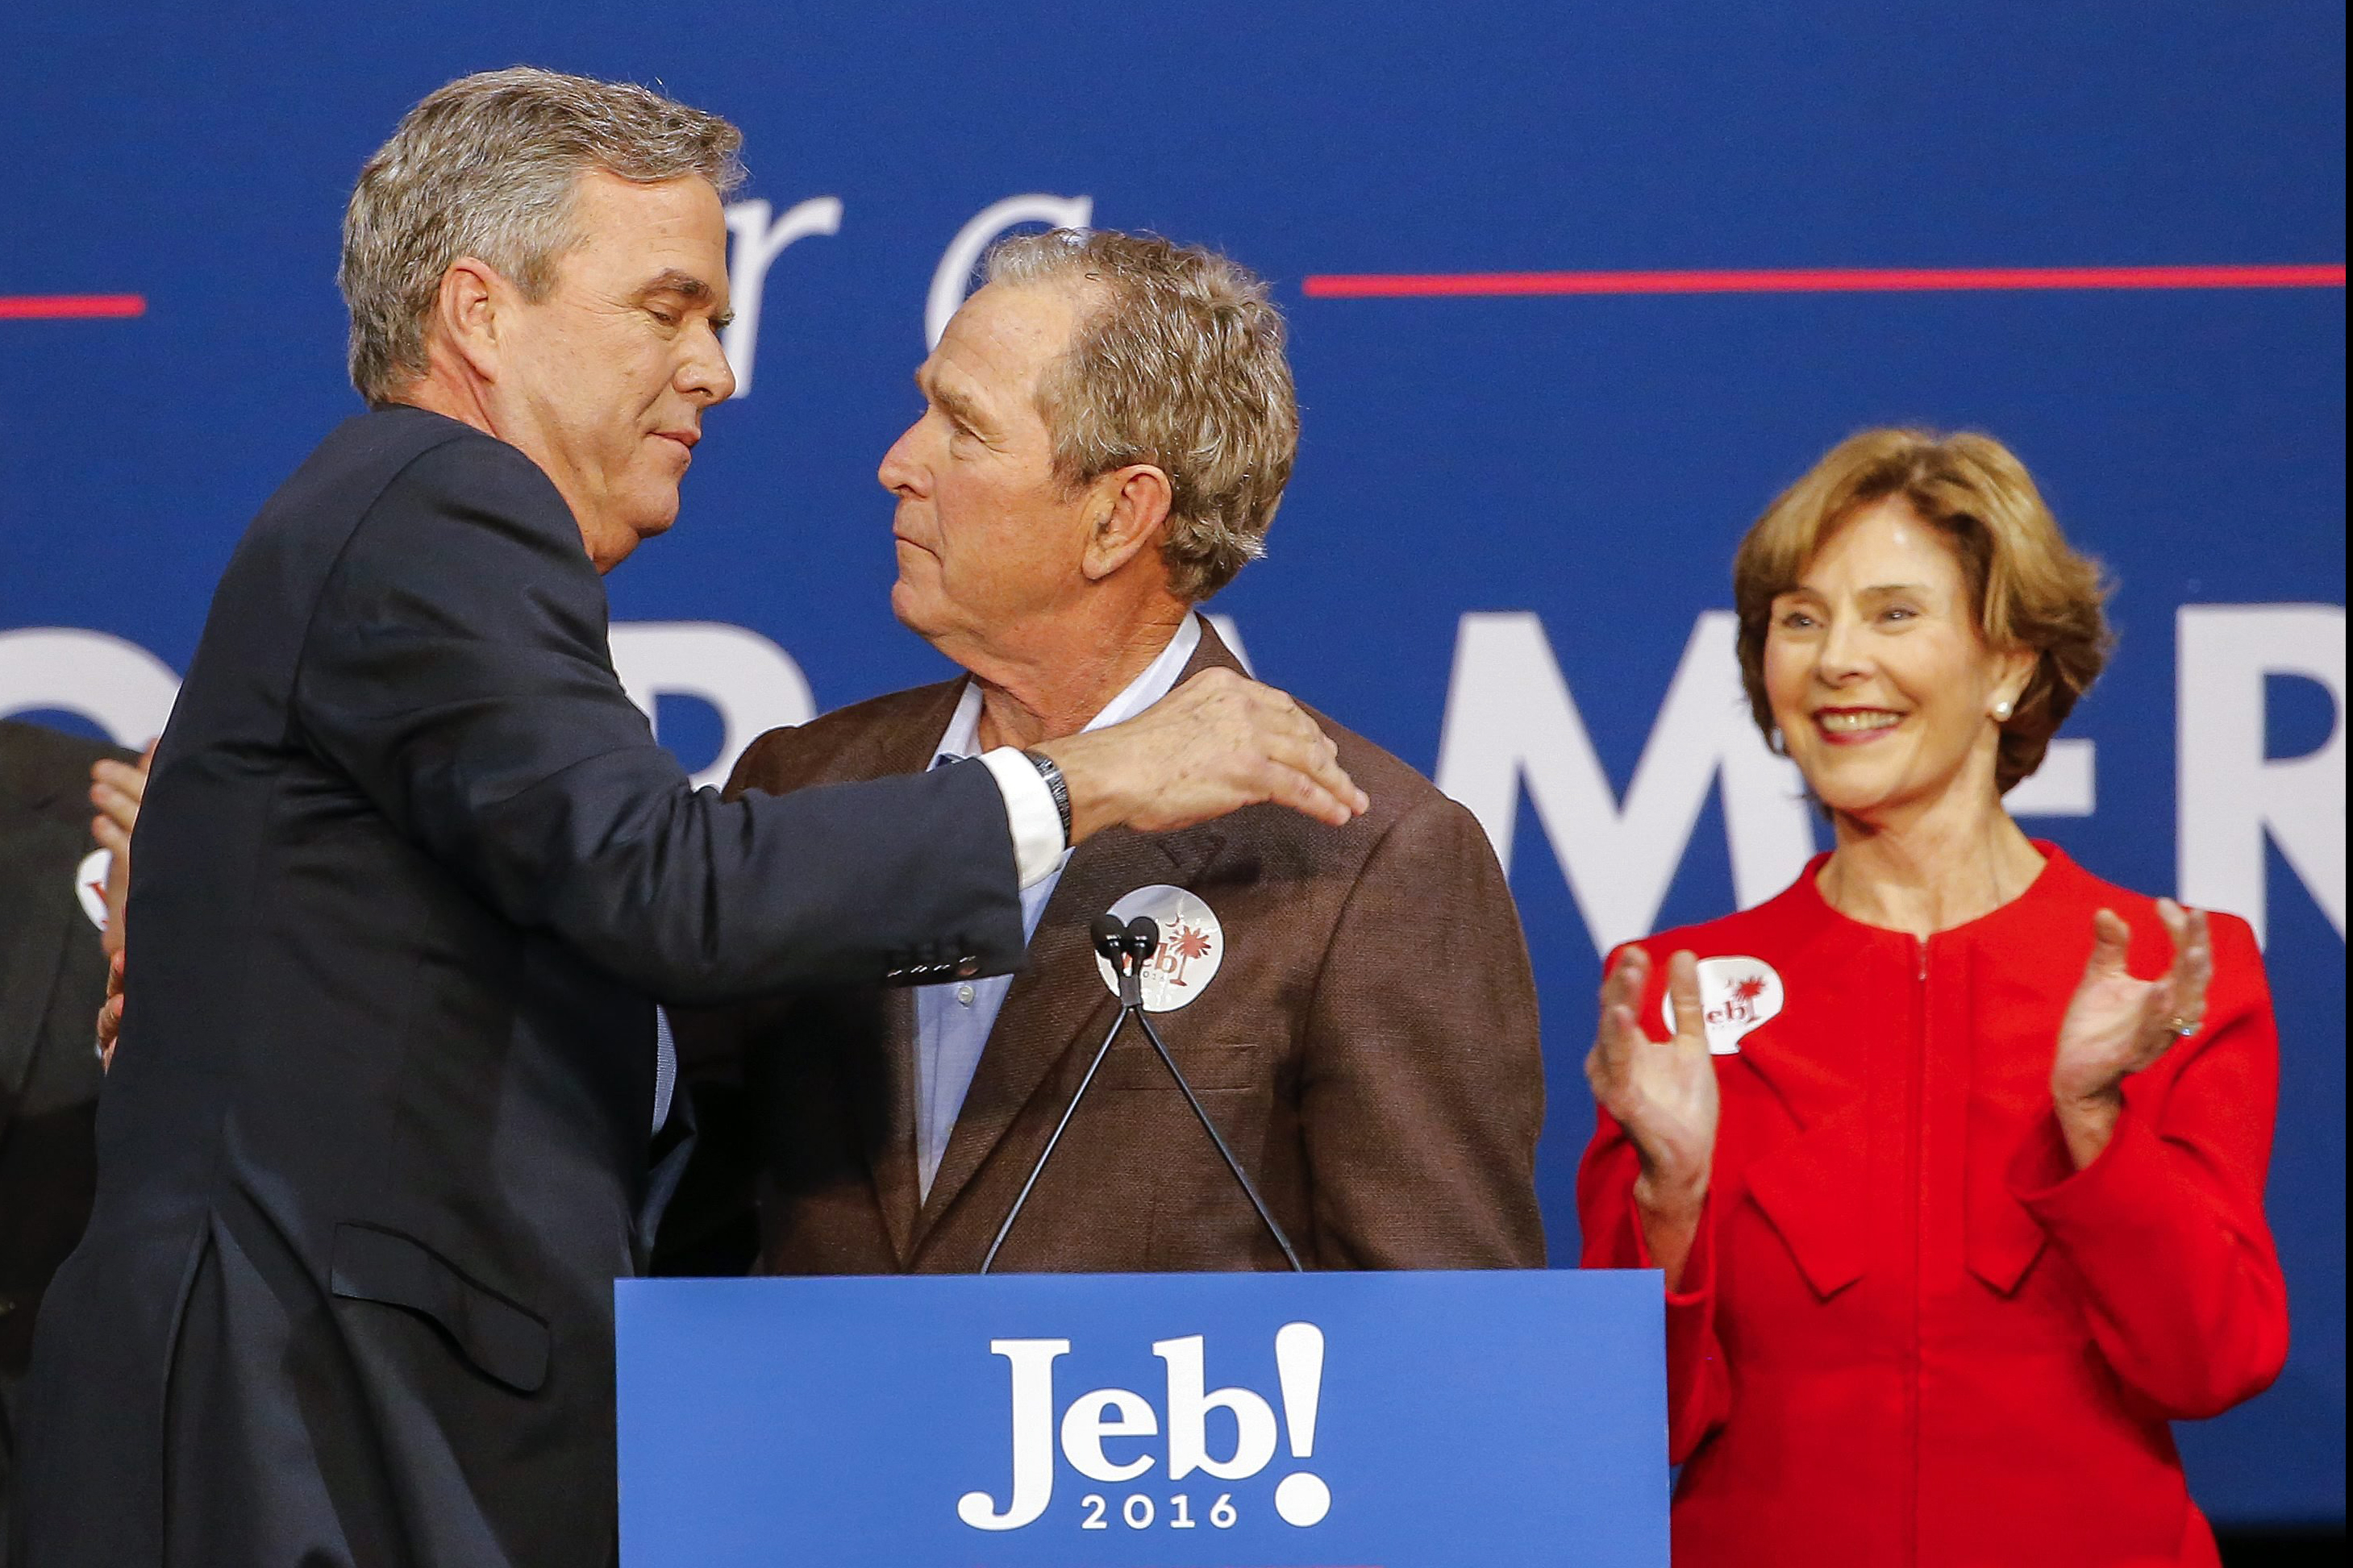 Former Republican presidential candidate Jeb Bush participates in a campaign event with his brother, former President George W. Bush and former First Lady Laura Bush in North Charleston, S.C. on Feb. 15, 2016.  Bush dropped out of the presidential race on Saturday.